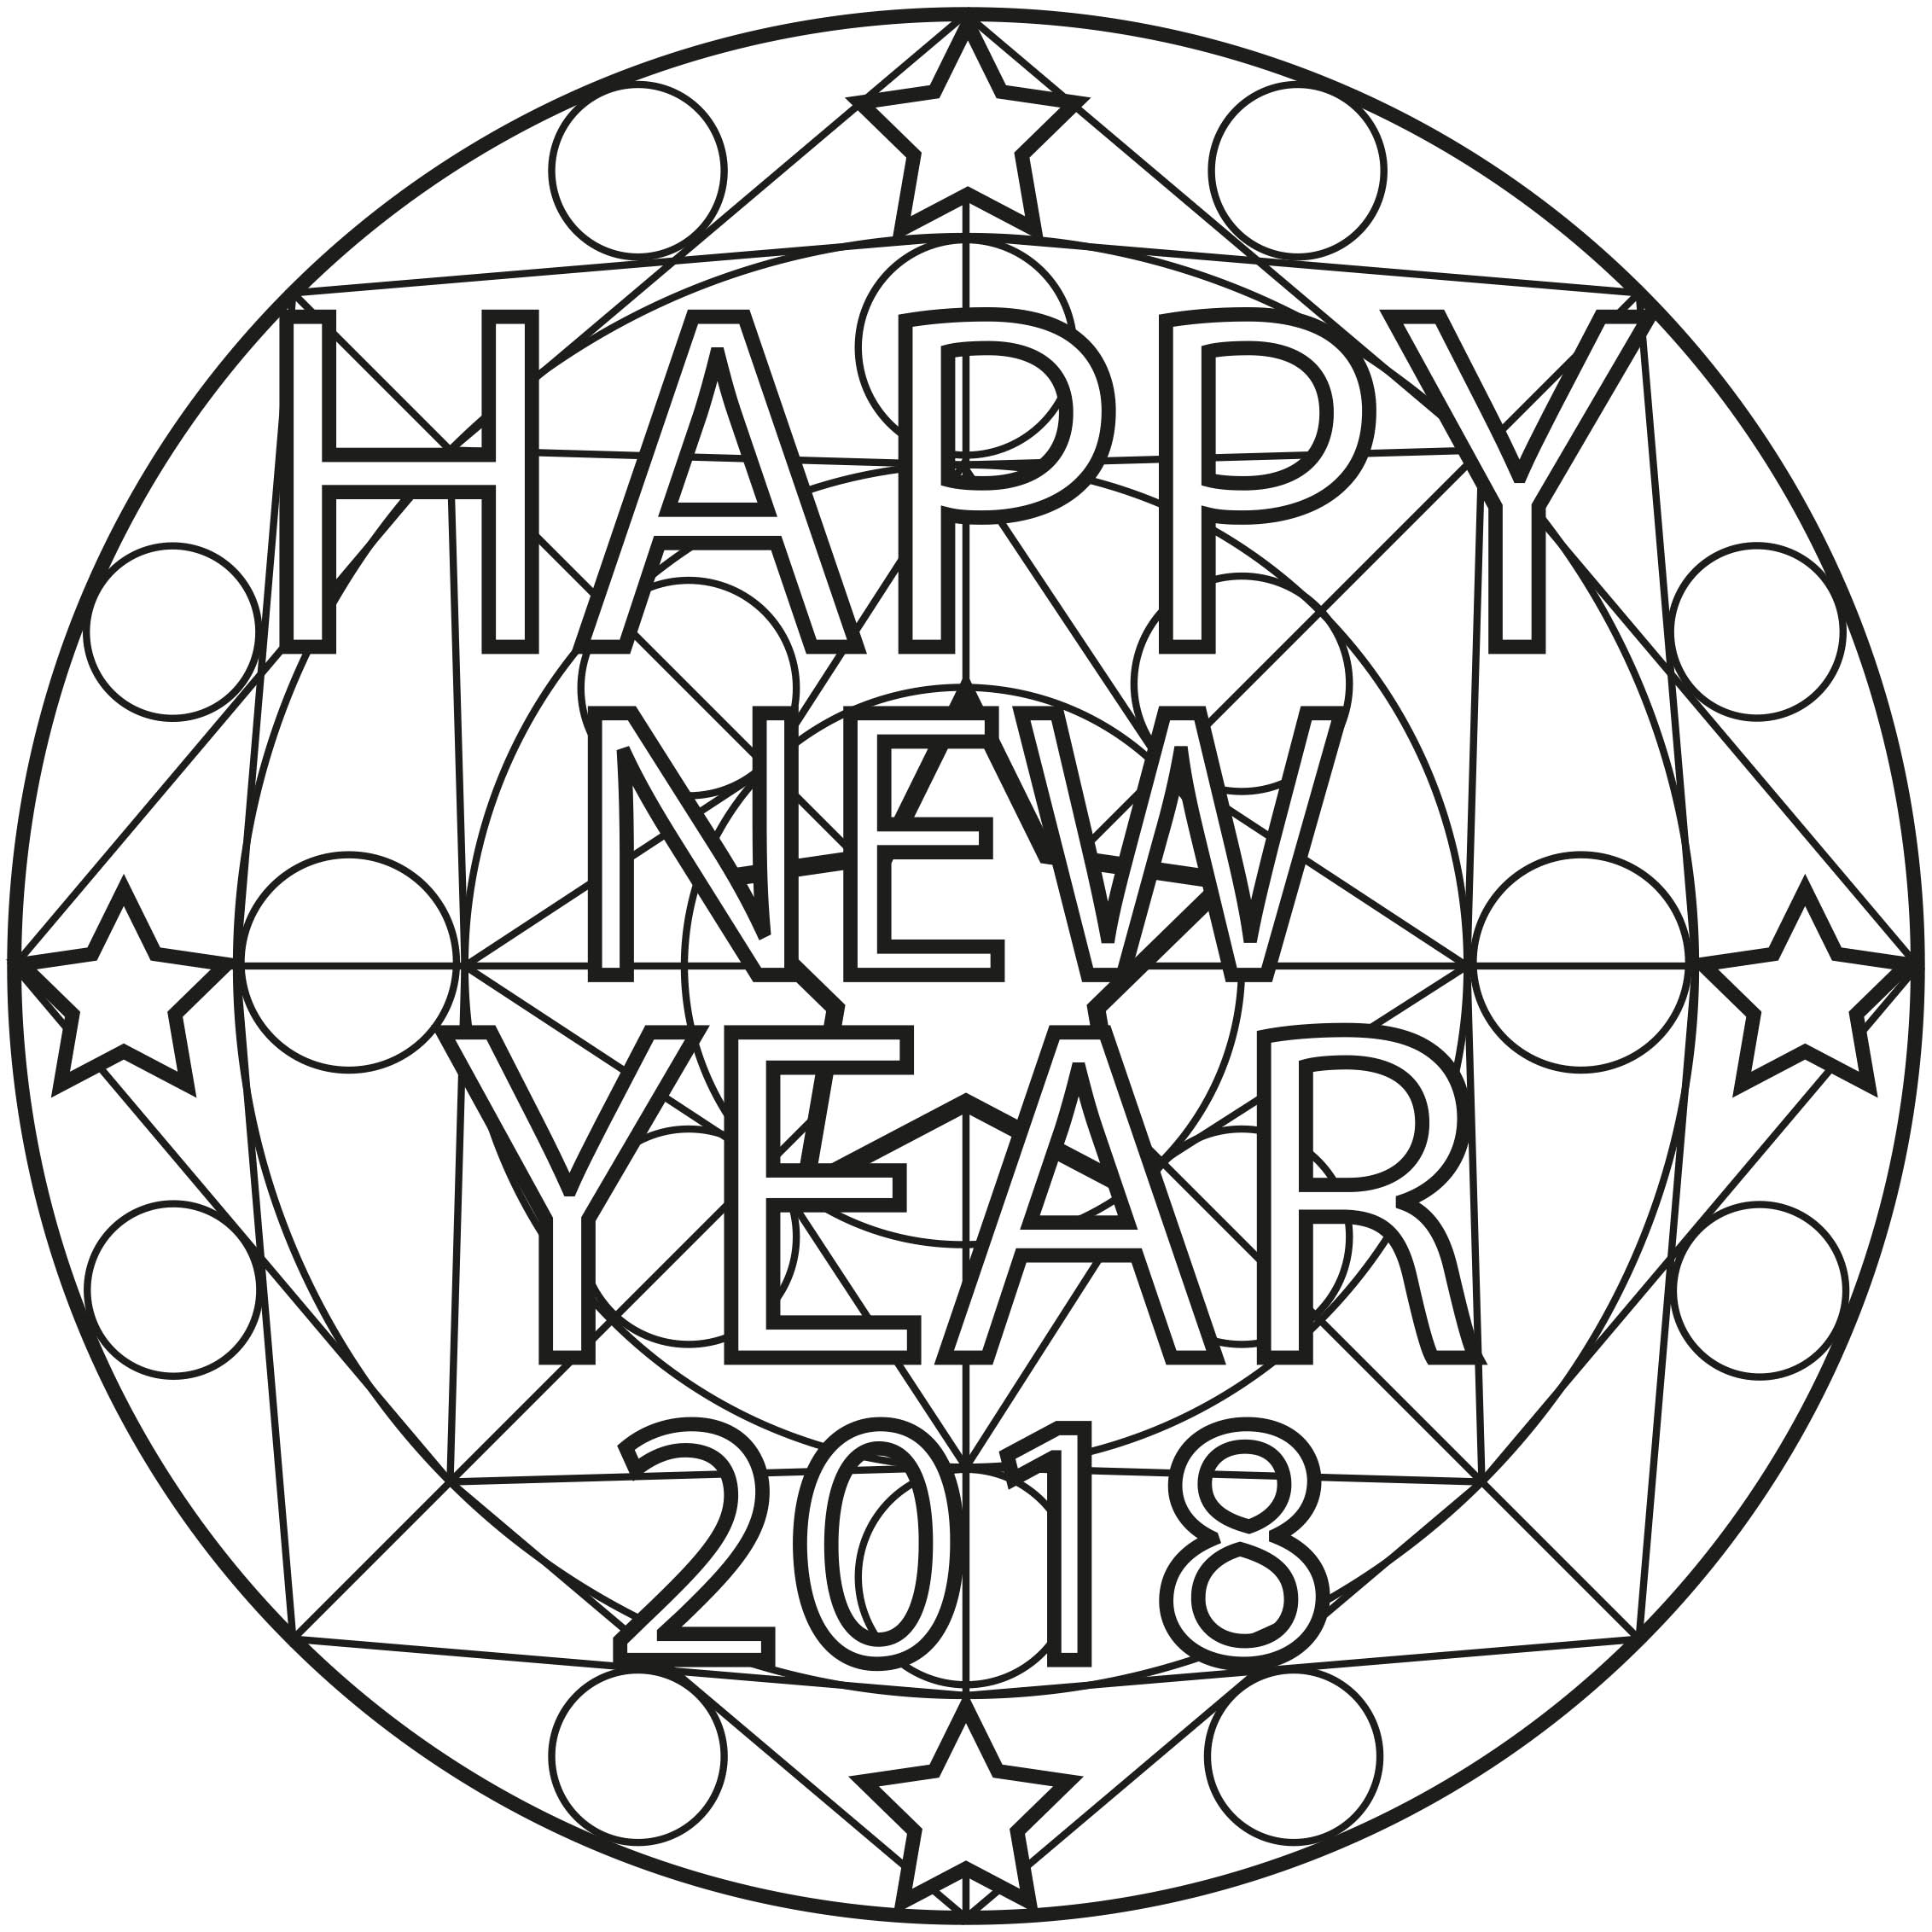 2018 is coming celebrate it by colouring this Mandala